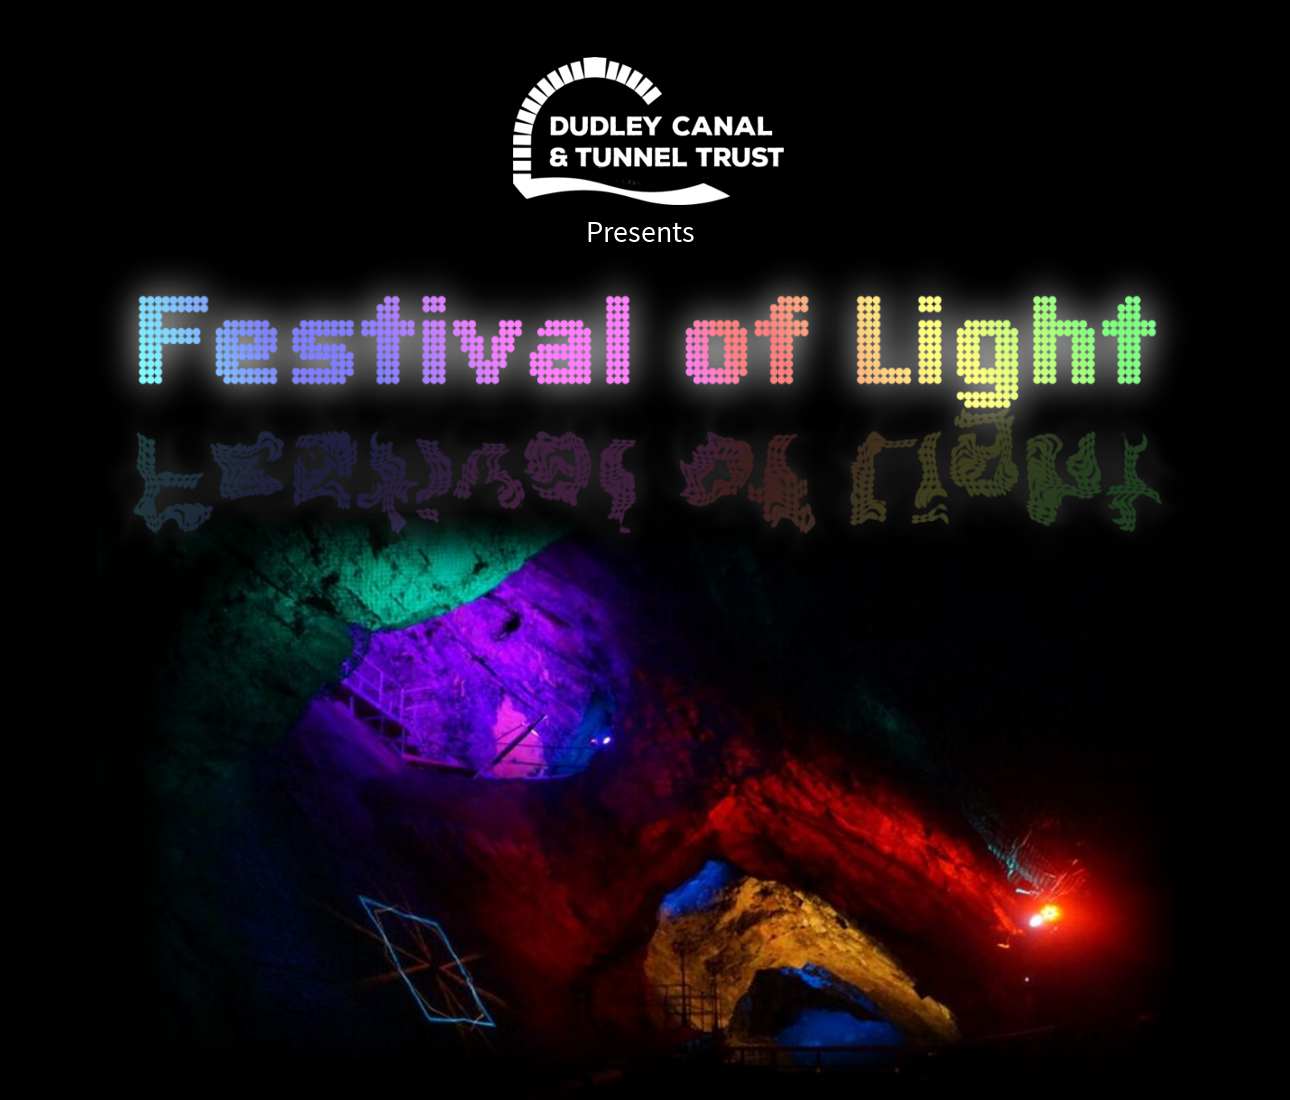 Dudley canal trust festival of light